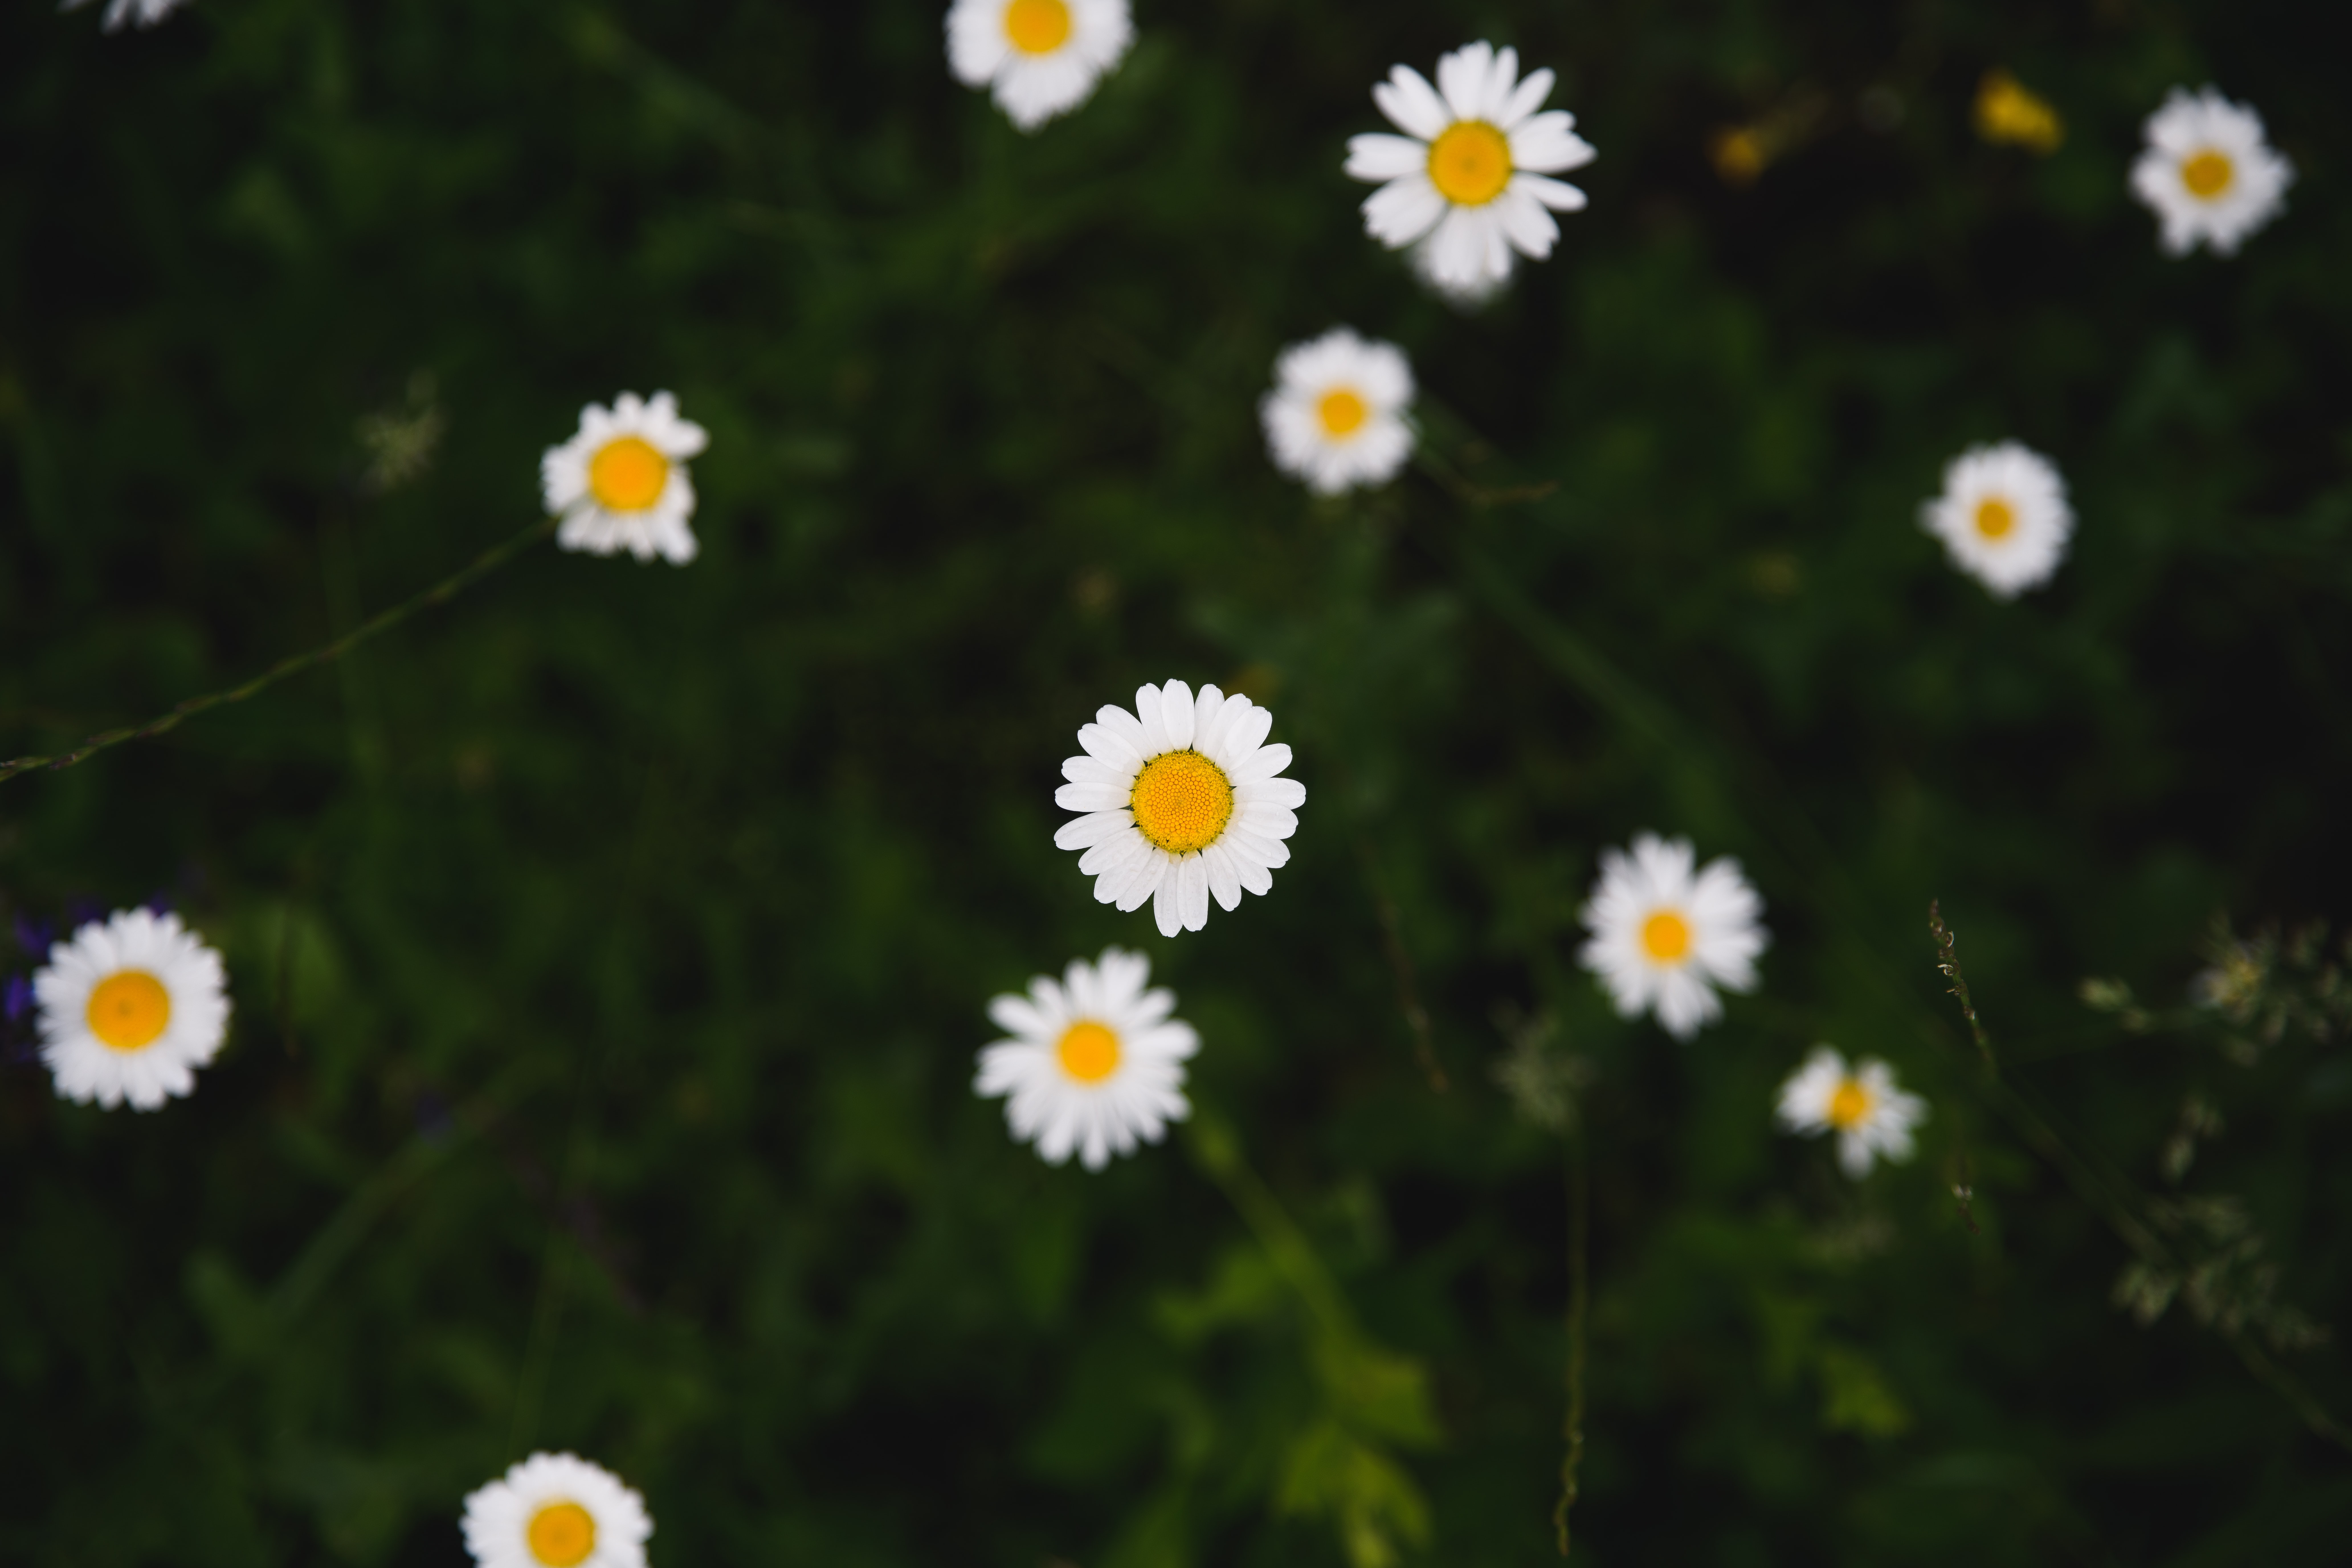 white daisy flowers in selective focus photography